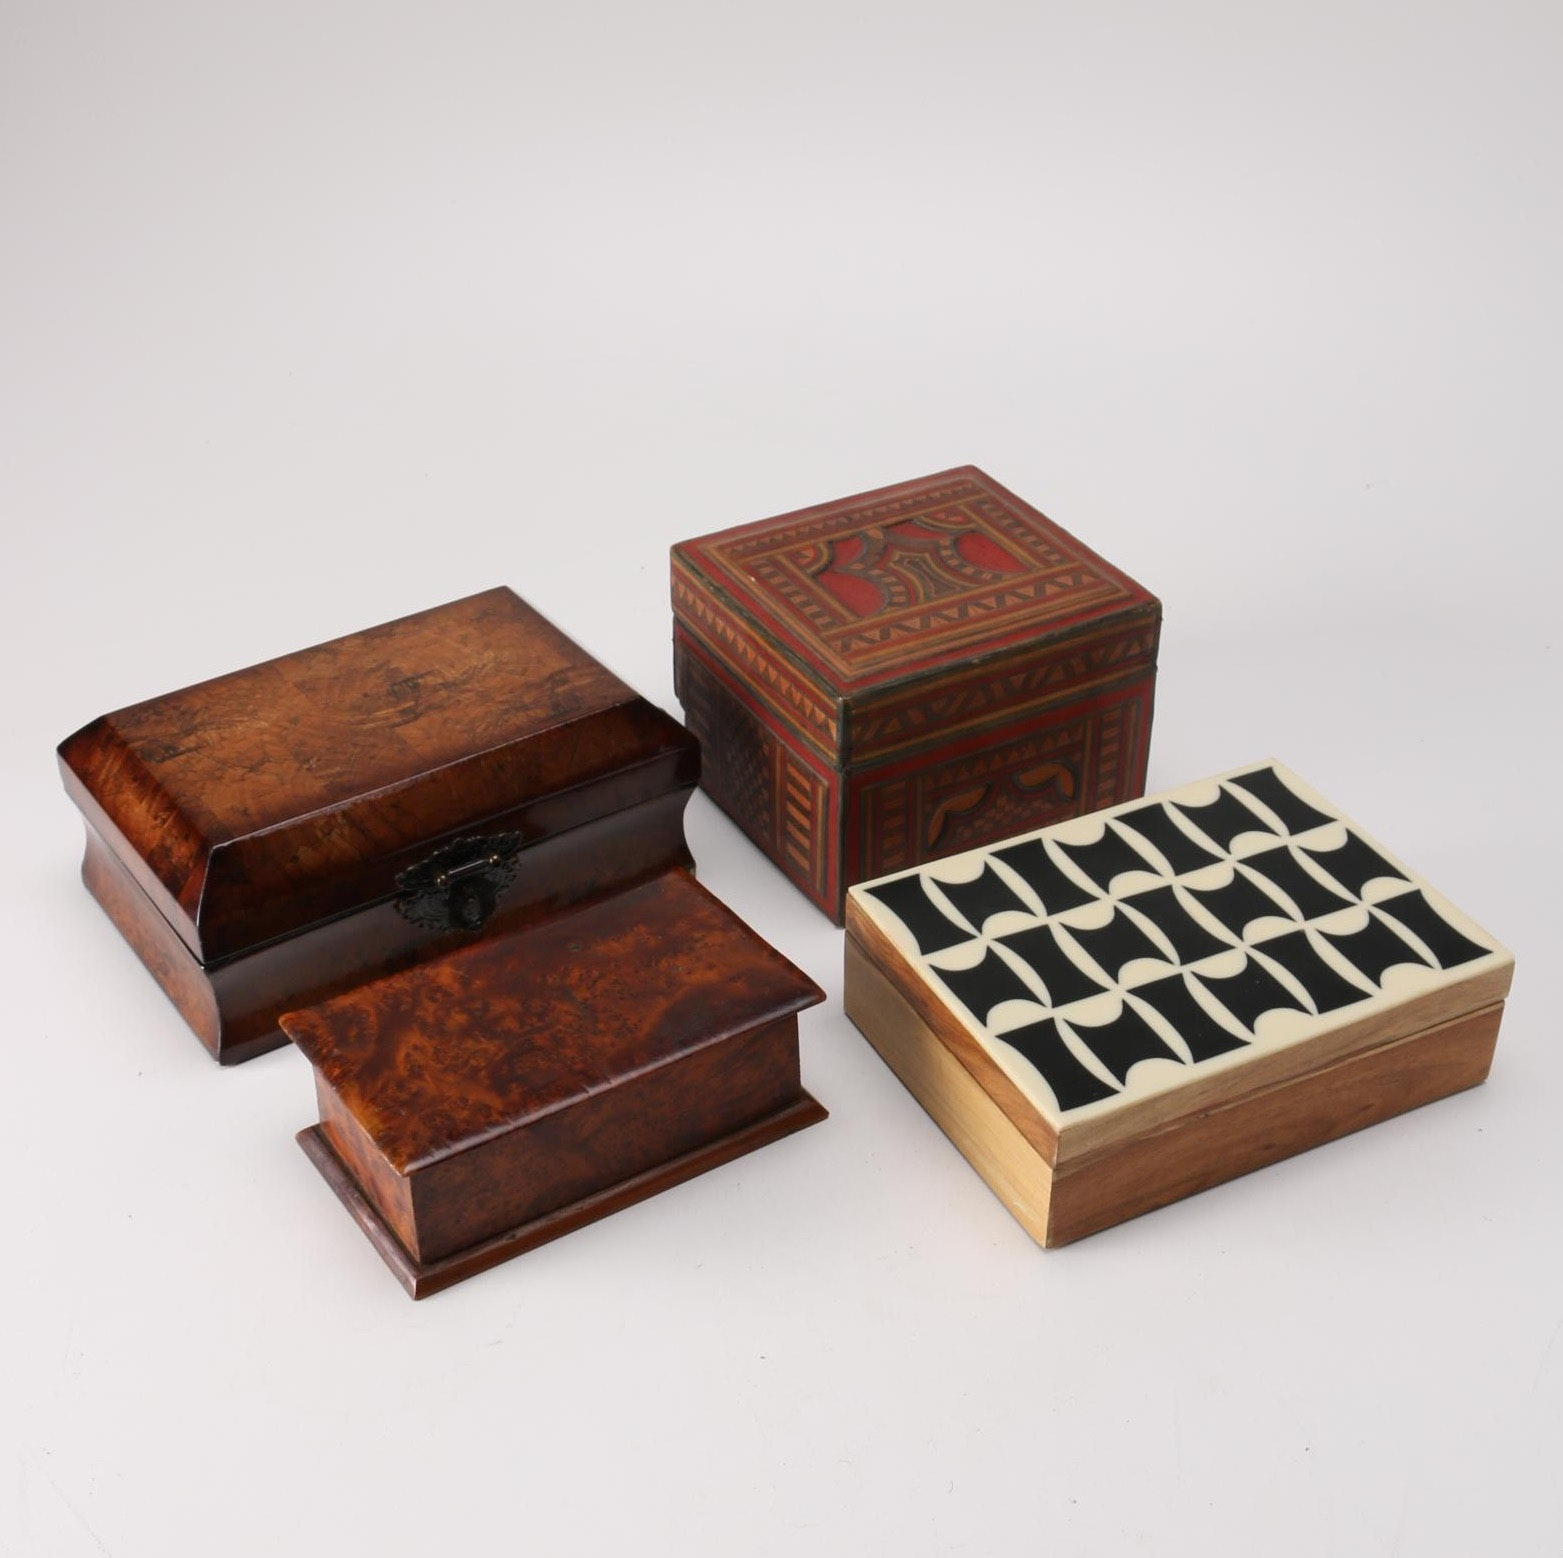 Wooden Trinket Boxes